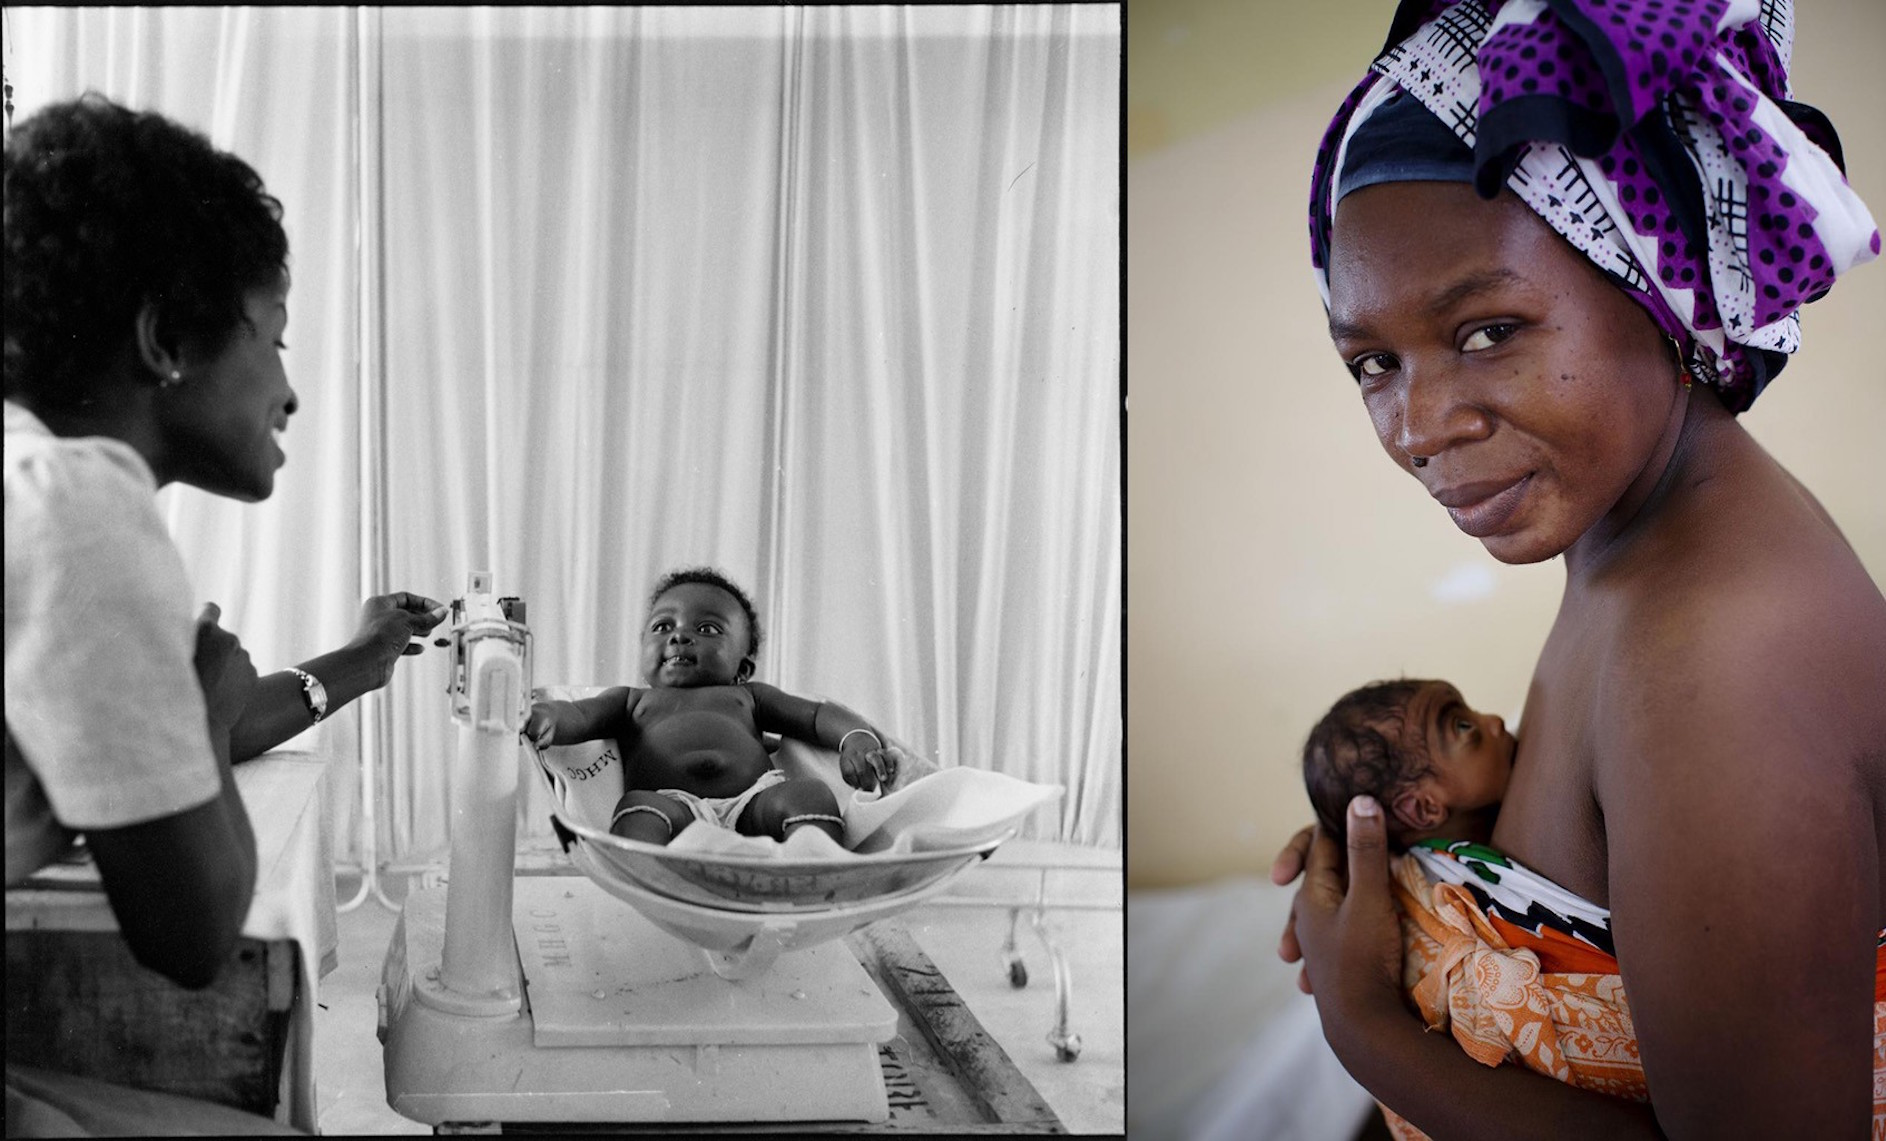 (Left) In 1960 in Ghana, a midwife weighs a child on a scale in a comprehensive long term rural health plan emphasising training of medical personnel in Tuma. (Right) In 2014, a woman cradles her preterm baby using 'kangaroo care' against her skin to keep